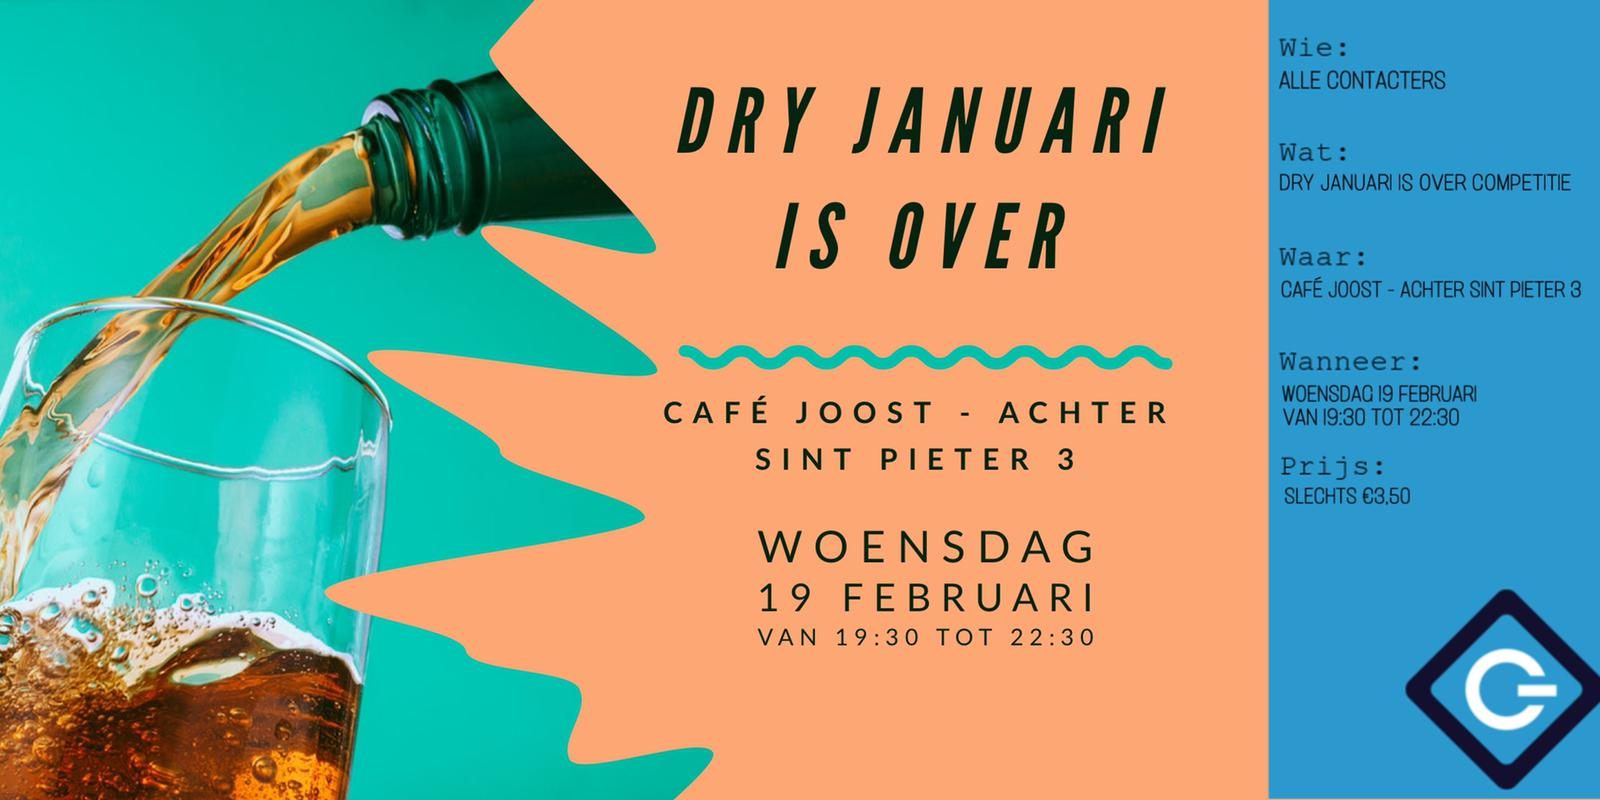 AC: Dry januari is over competitie